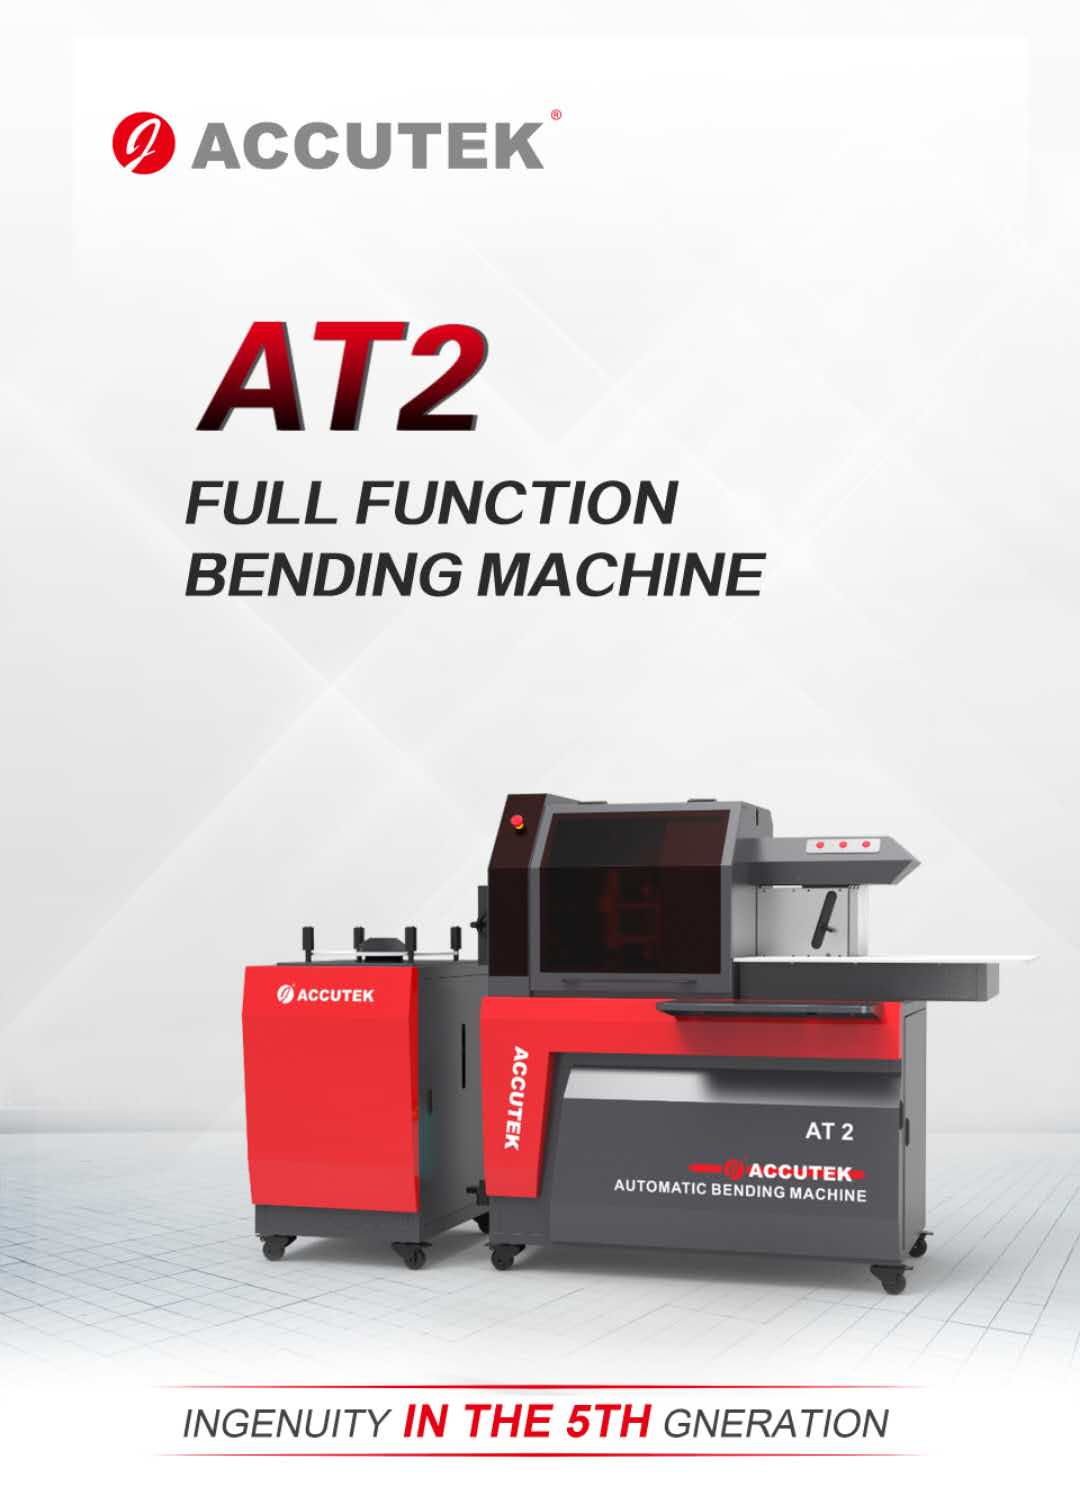 ACCUTEK AT2 FULL FUNCTION BENDING MACHINE